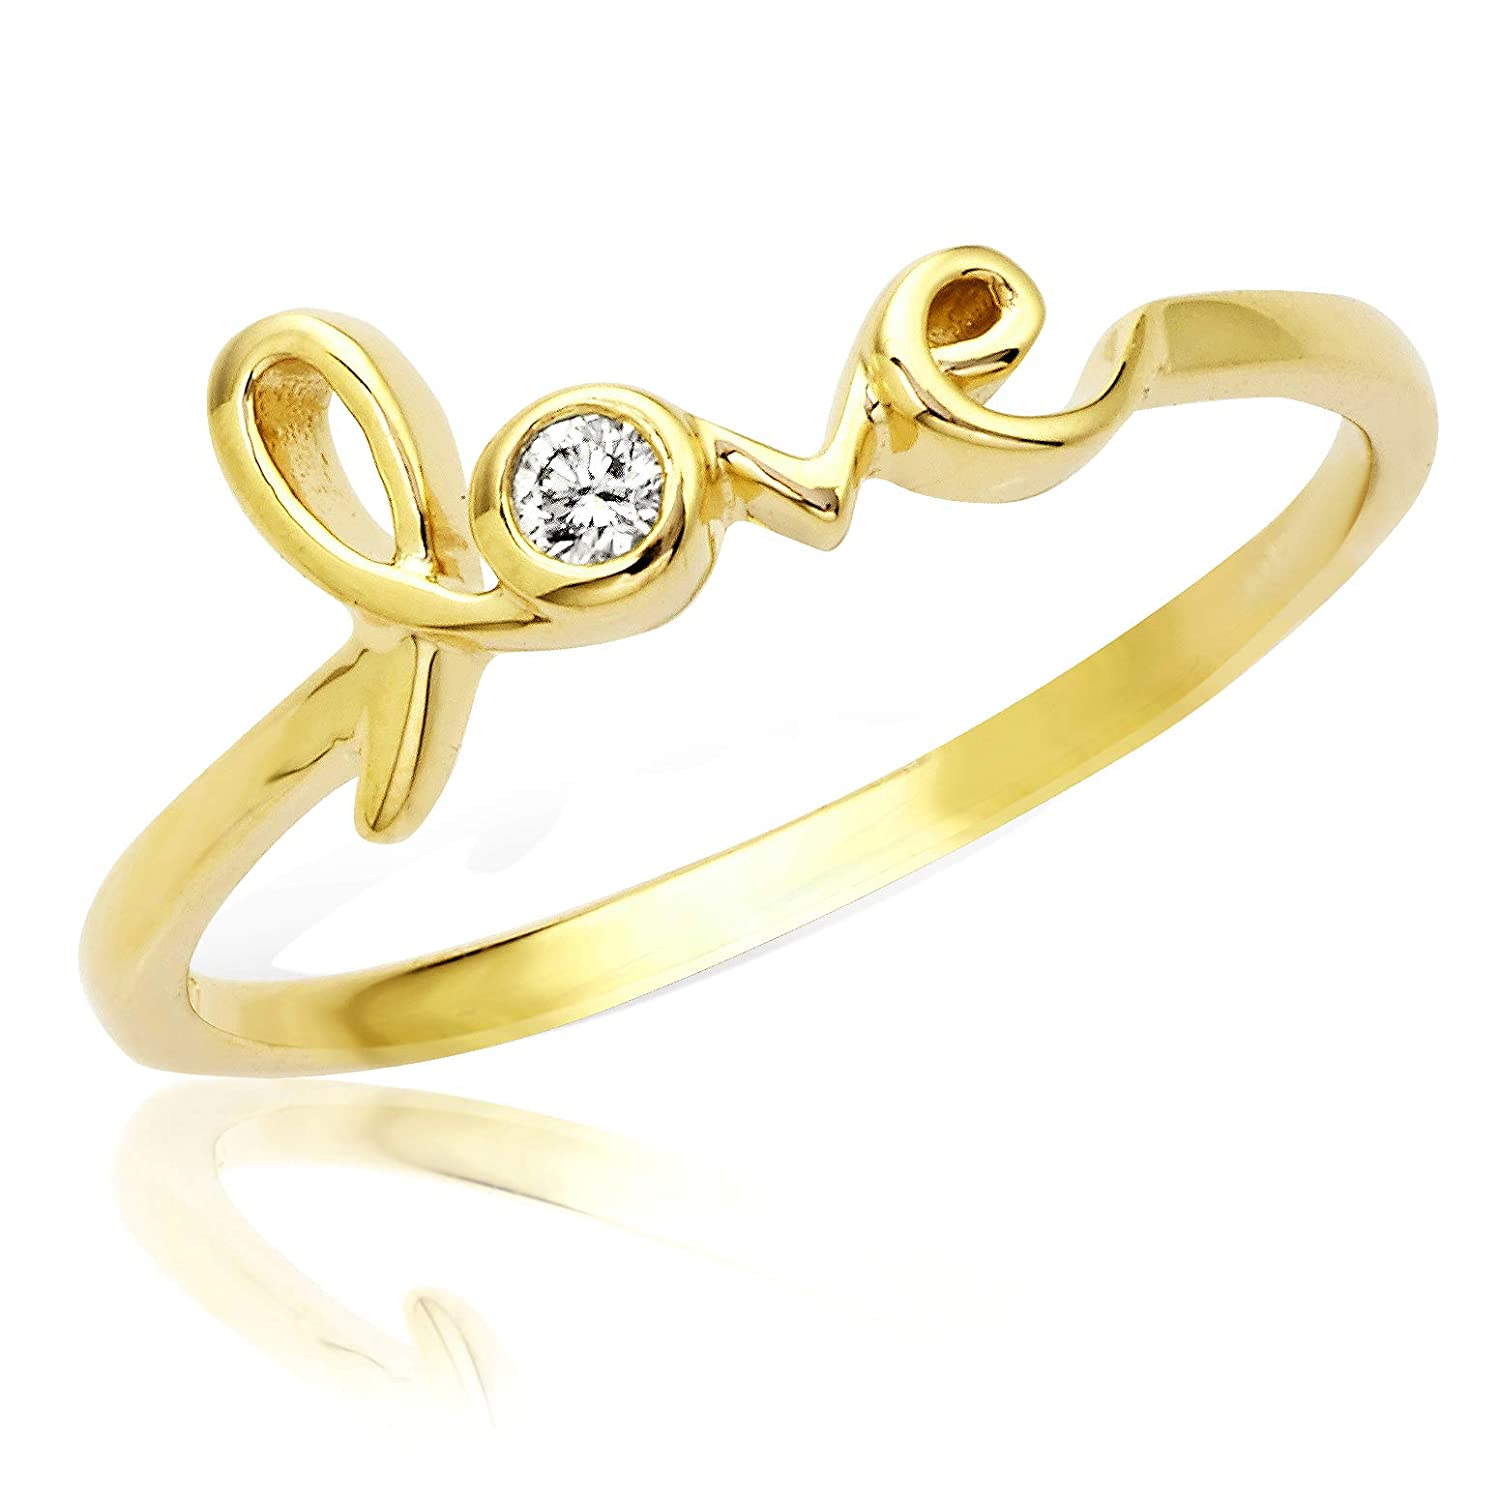 Yellow Gold Ring Designer Diamondlove Ring in 14 Karat sizes 5-9 K ctw LoveBling 0.05 Carat